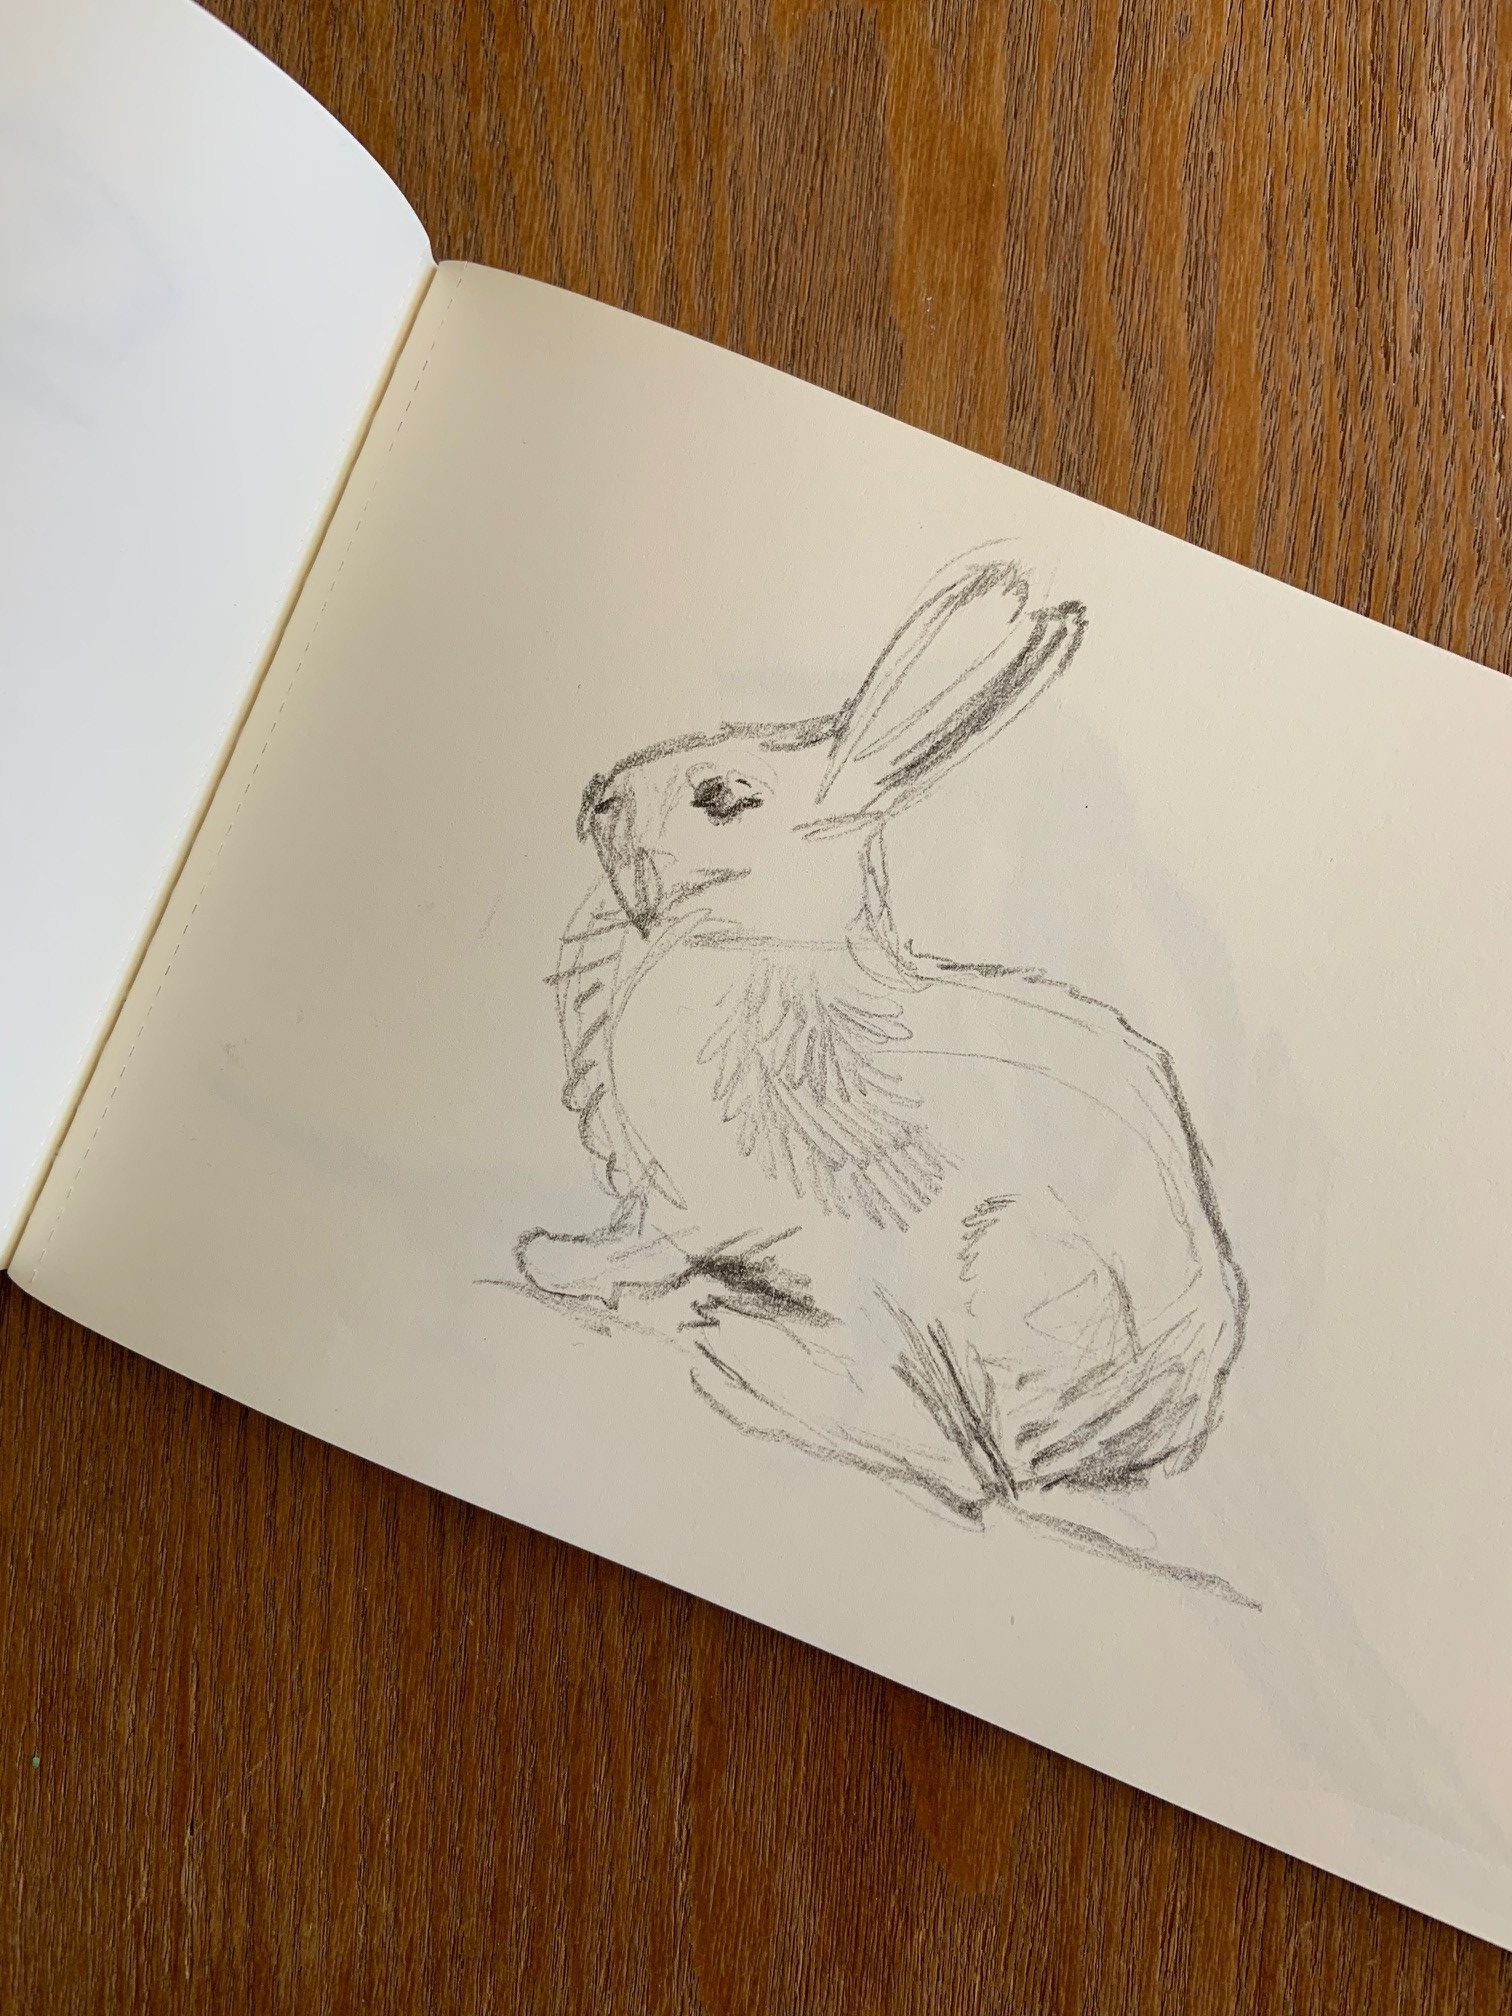 Rabbit sketched on a piece of paper